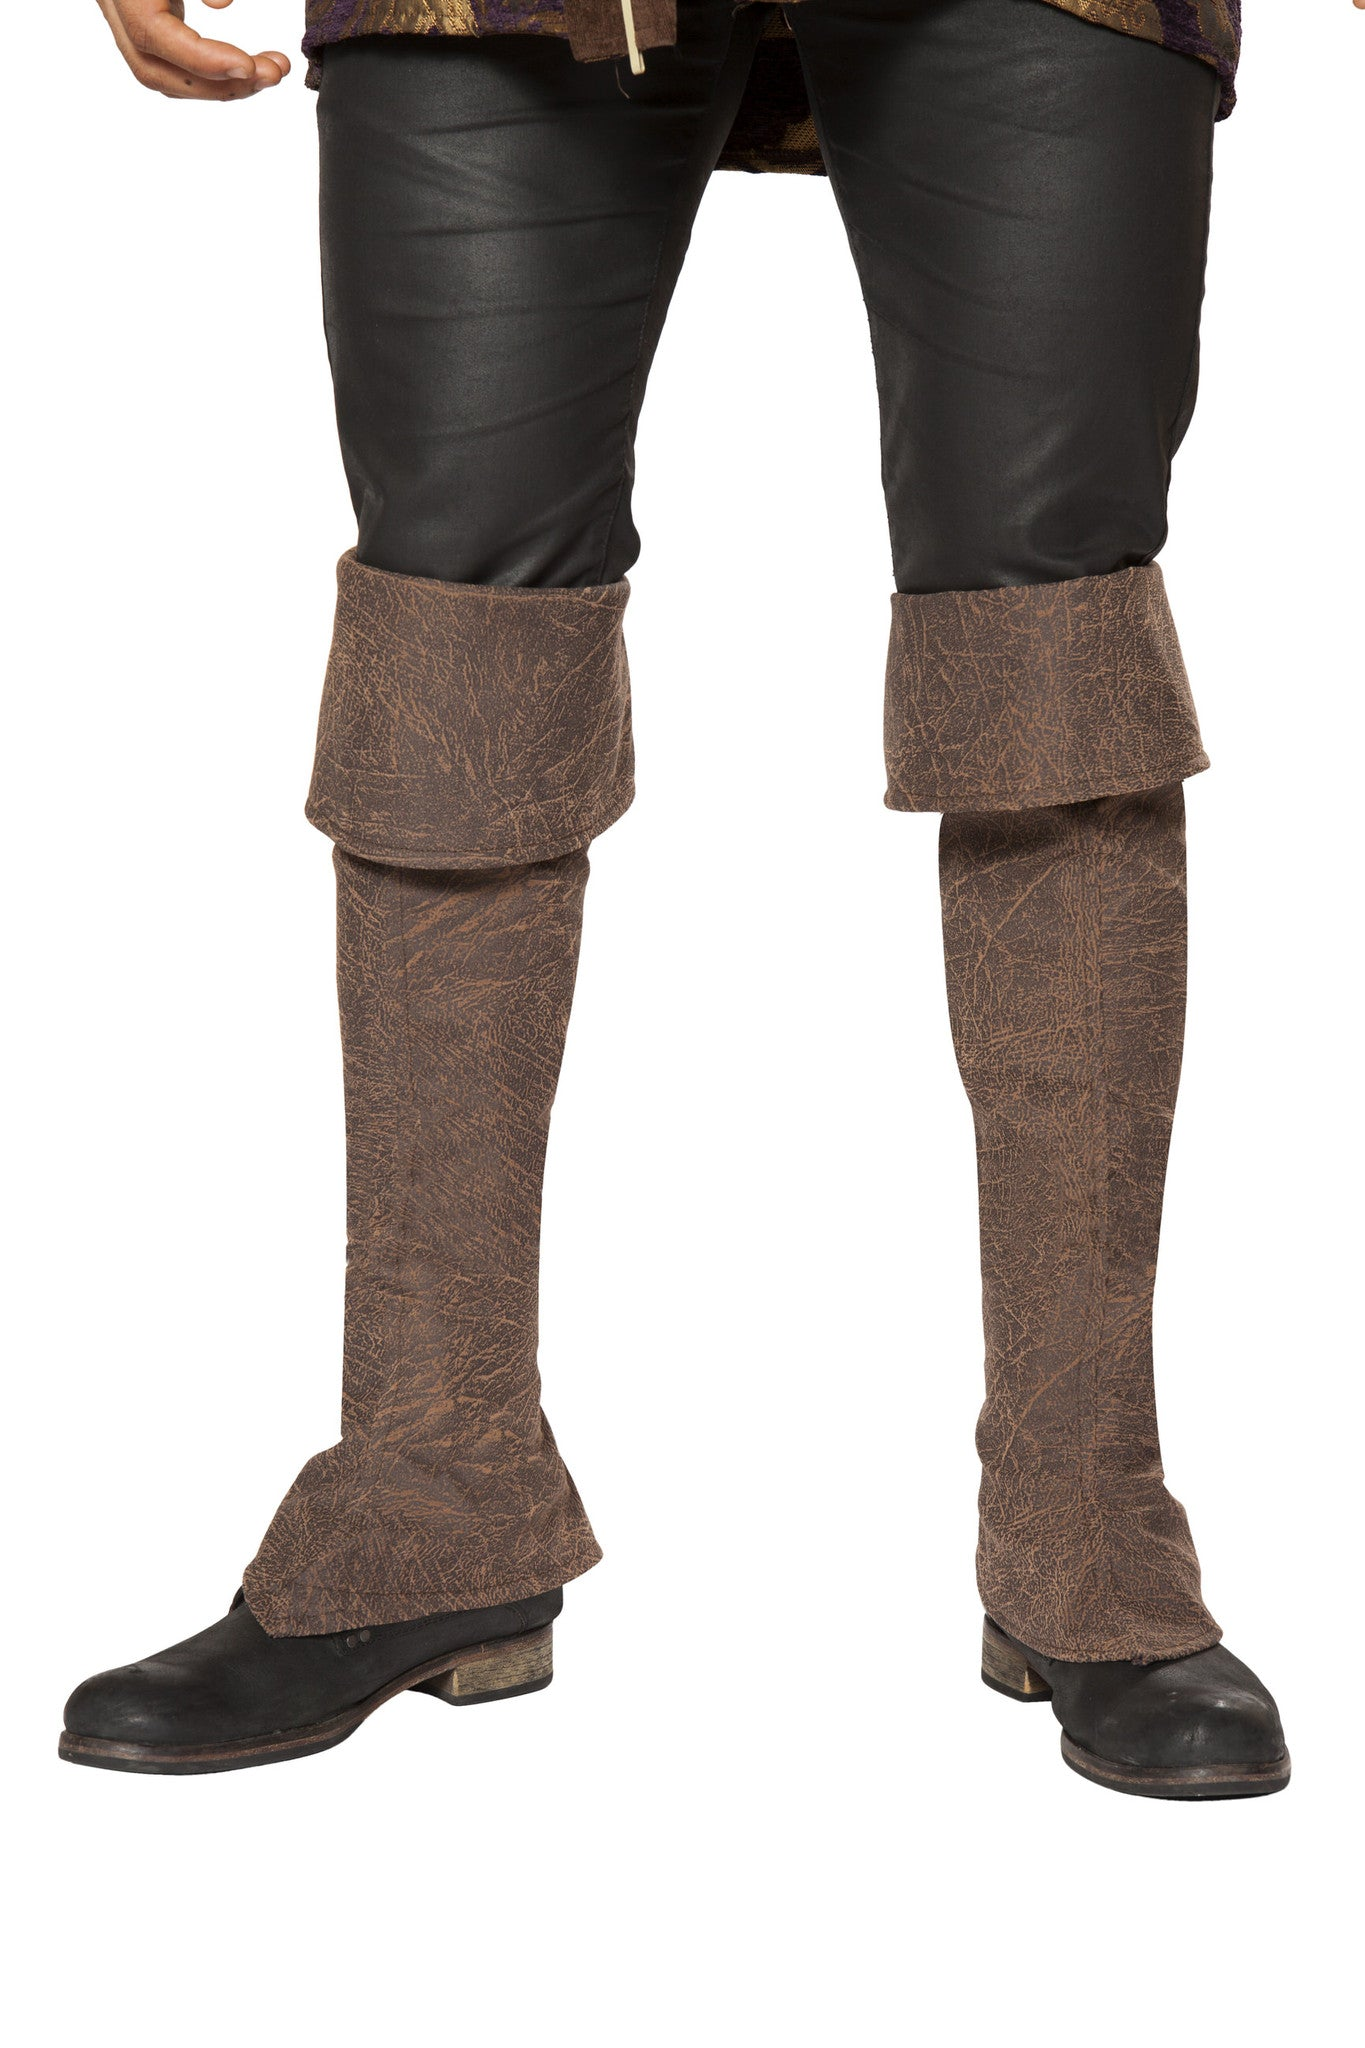 Pirate Boot Covers with Zipper Detail ${description} | Roma Costume and Roma Confidential wholesale manufacturer of Women Apparel bulk world wide wholesale and world wide drop ship services for Adult Halloween Costumes, Sexy and Elegant Lingerie, Rave Clothing, Club wear, and Christmas Costumes. Costumes, mens, accessories, Roma Costume, Inc., Roma Costume, Roma Confidential, Wholesale clothing, drop ship, drop ship service, Wholesale Lingerie, Wholesale Adult Halloween Costumes, Rave Clothing, EDM Clothing, Festival Wear, Christmas Costumes, Clubwear, Club wear.